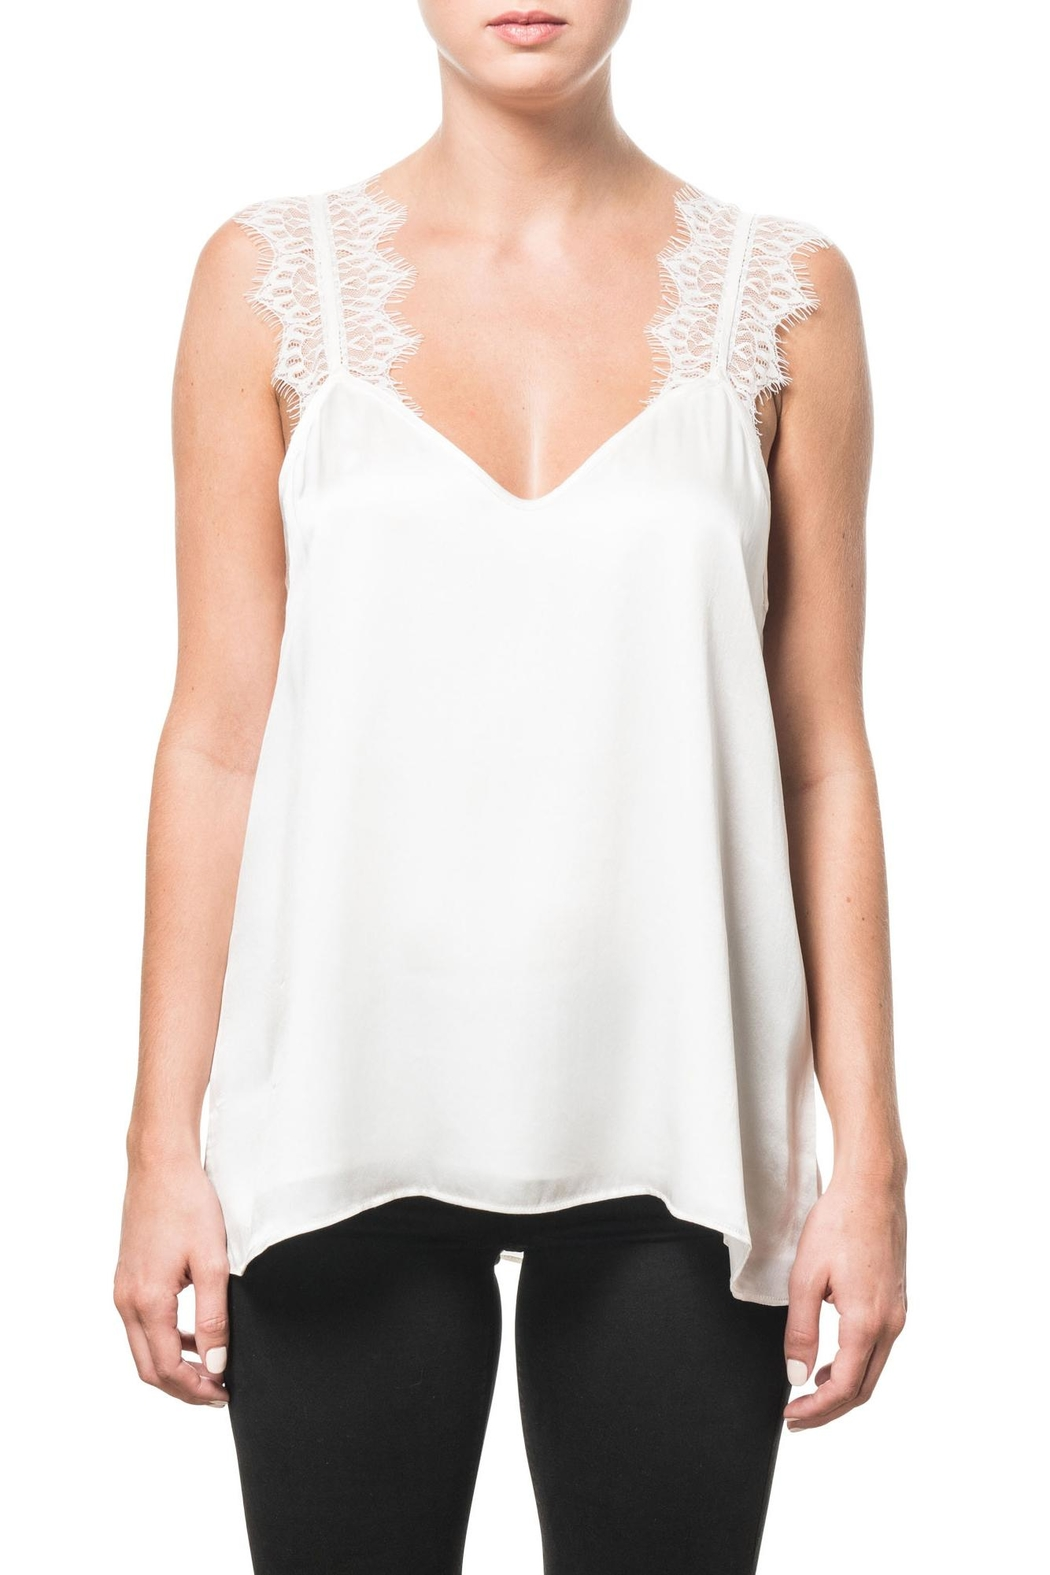 Cami NYC Charmeuse Lace Camisole - Main Image